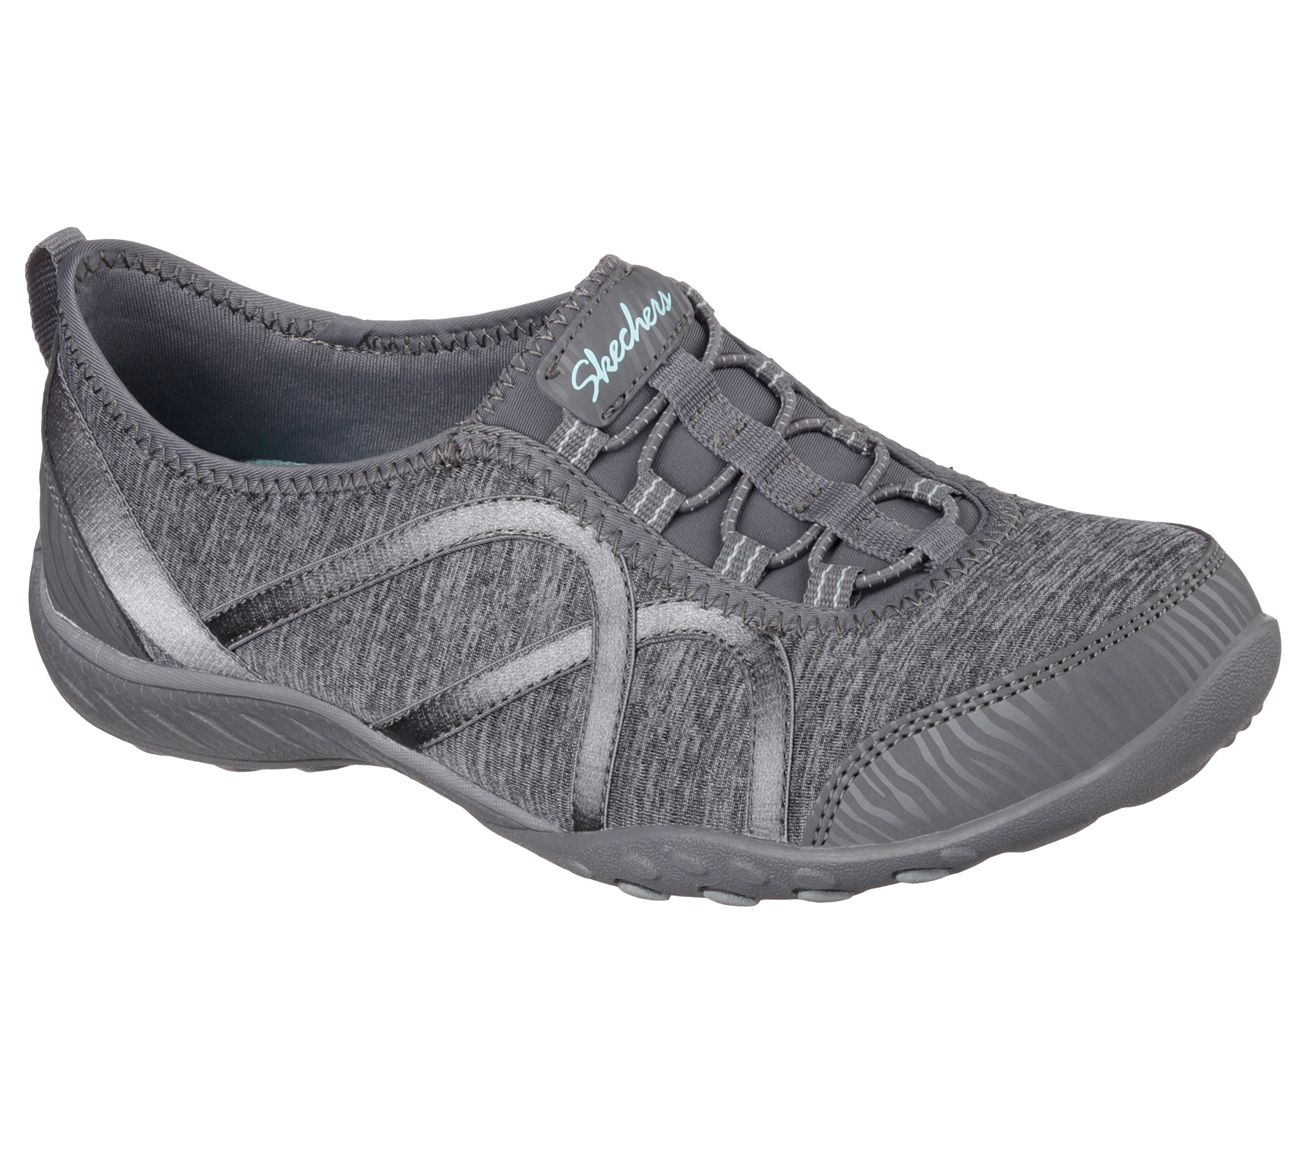 NWT-Womens SKECHERS shoes/RELAX FITSLIP RESISTANCEMEMORY FOAMAIR-COOLED SIZE6